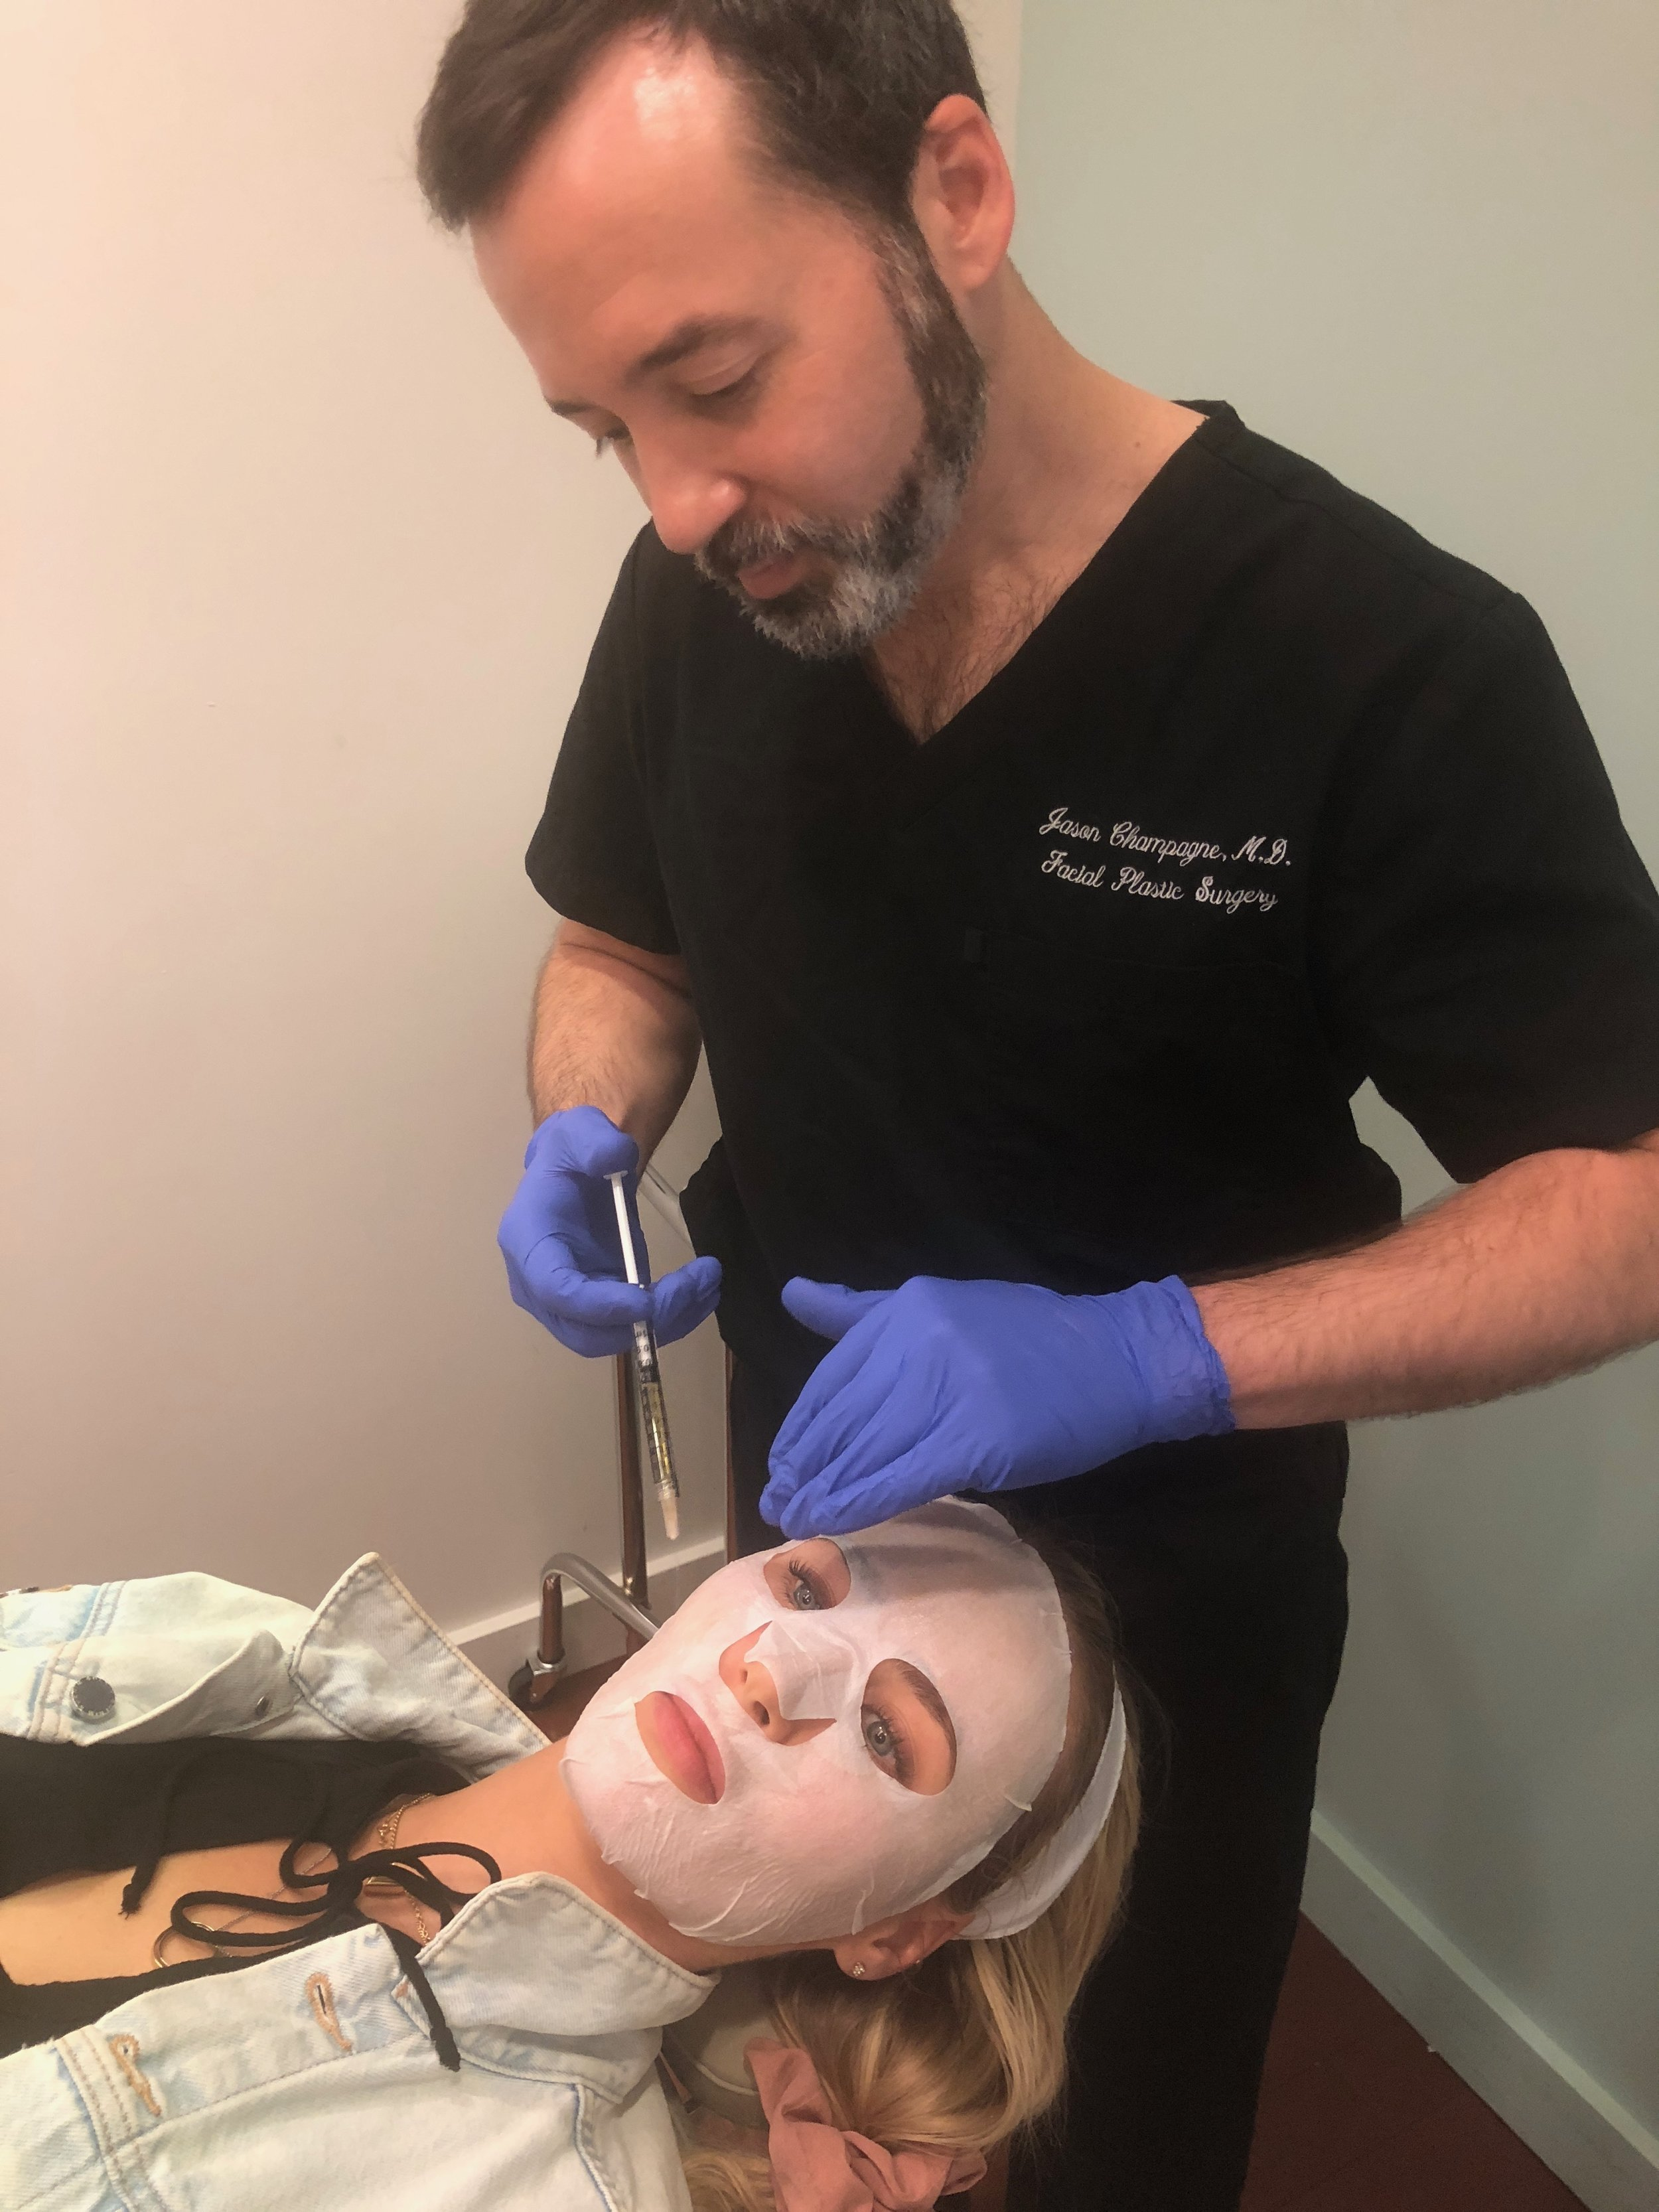 The Youth-Regenerating Facial - Dr. Jason Champagne, Plastic Surgeon Beverly Hills CA